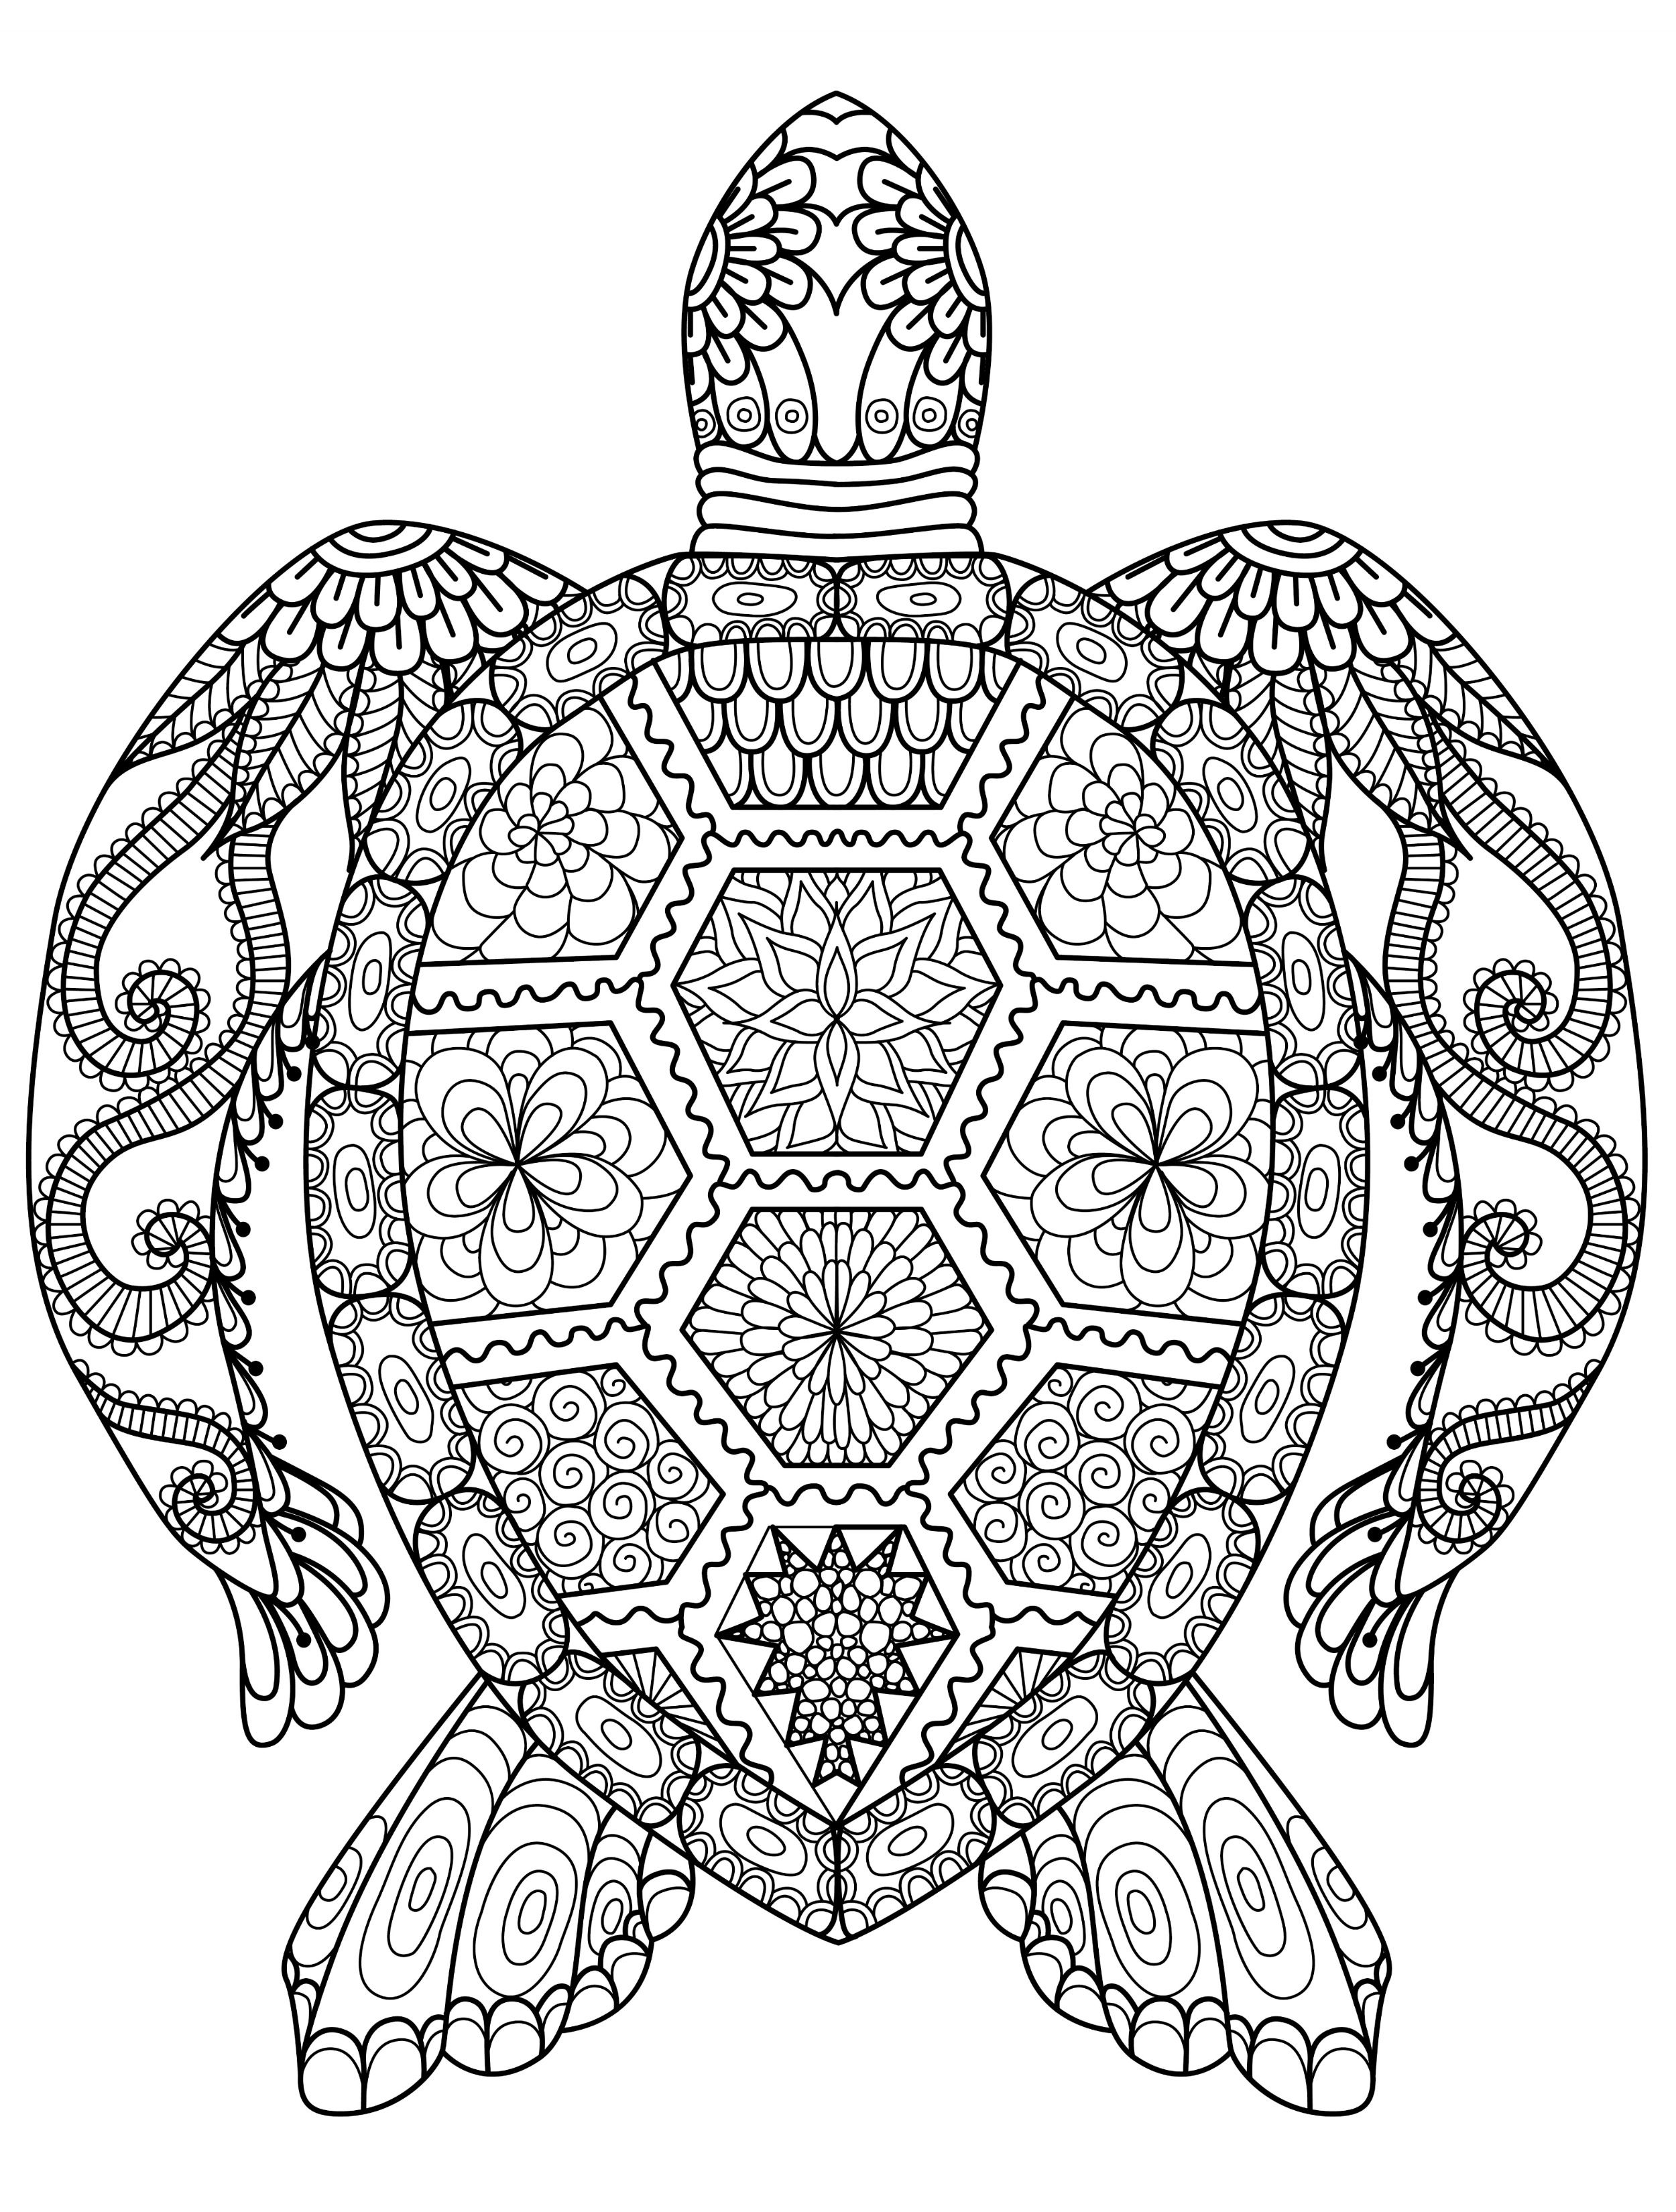 Pin on Coloring--Back to our youth--Adult Coloring Projects!